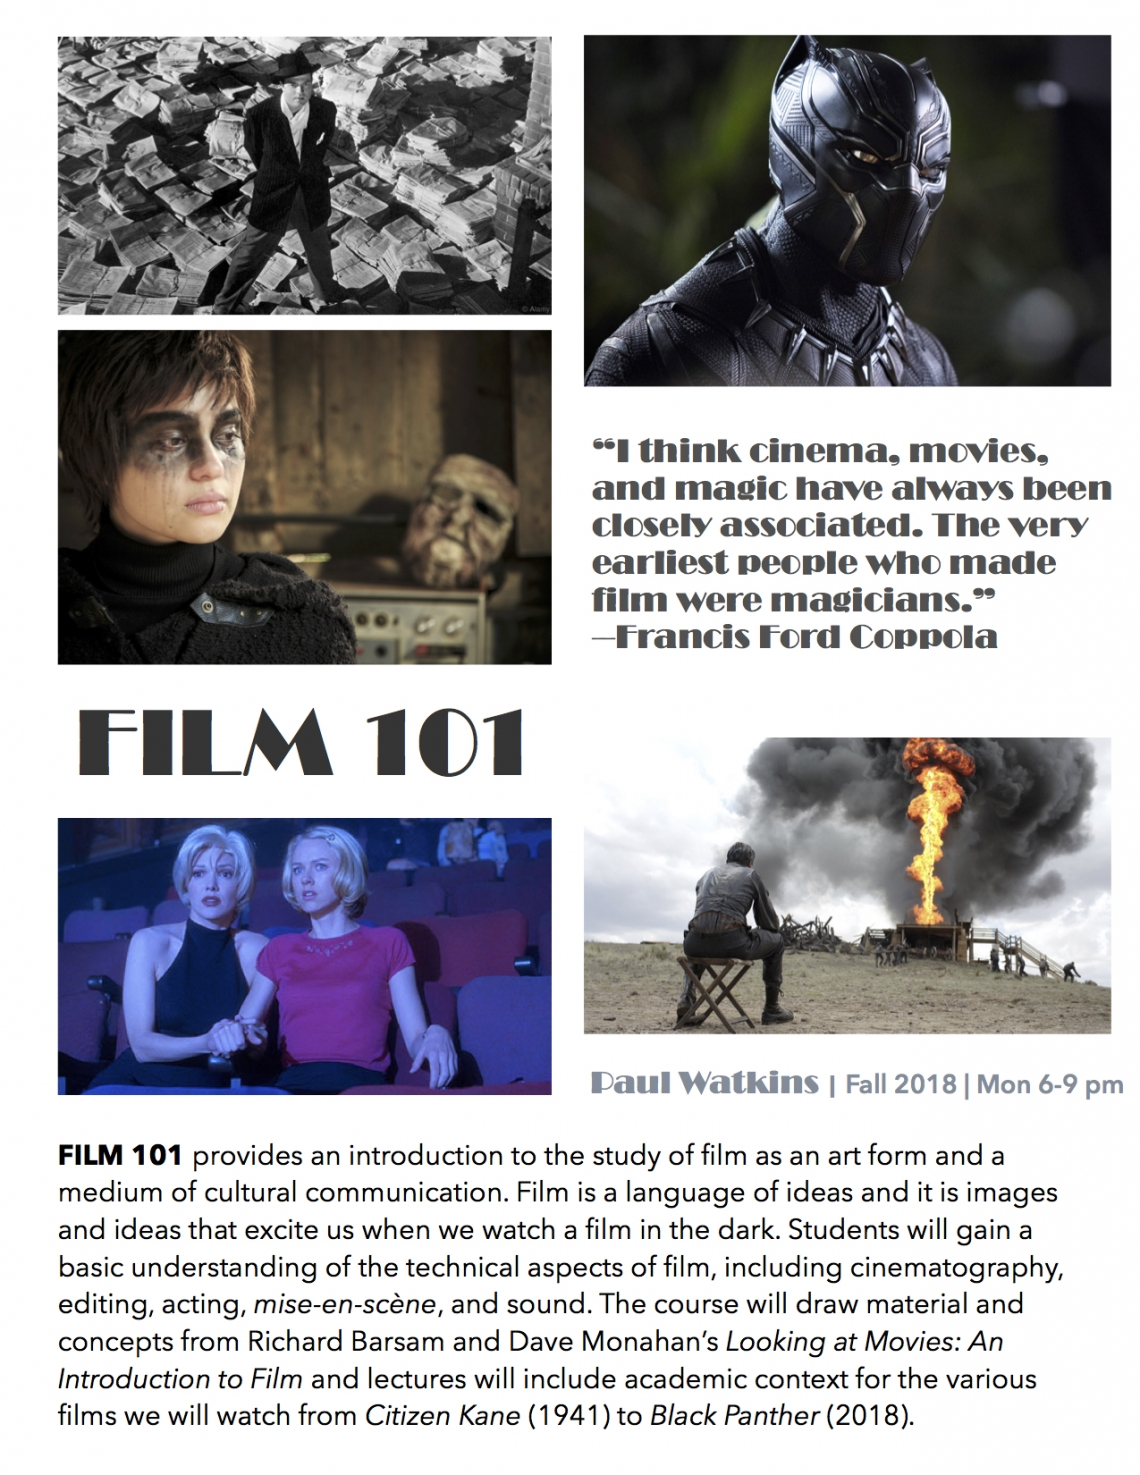 FILM 101 provides an introduction to the study of film as an art form and a medium of cultural communication. Film is a language of ideas and it is images and ideas that excite us when we watch a film in the dark. Students will gain a basic understanding